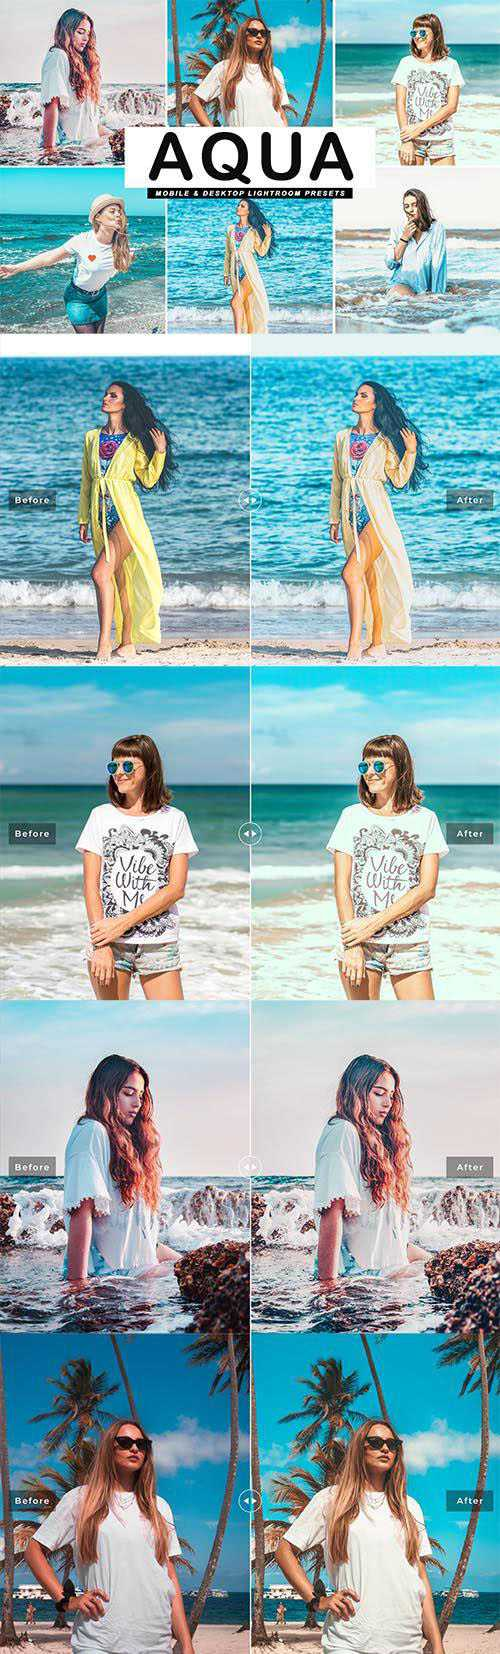 Aqua Mobile & Desktop Lightroom Presets